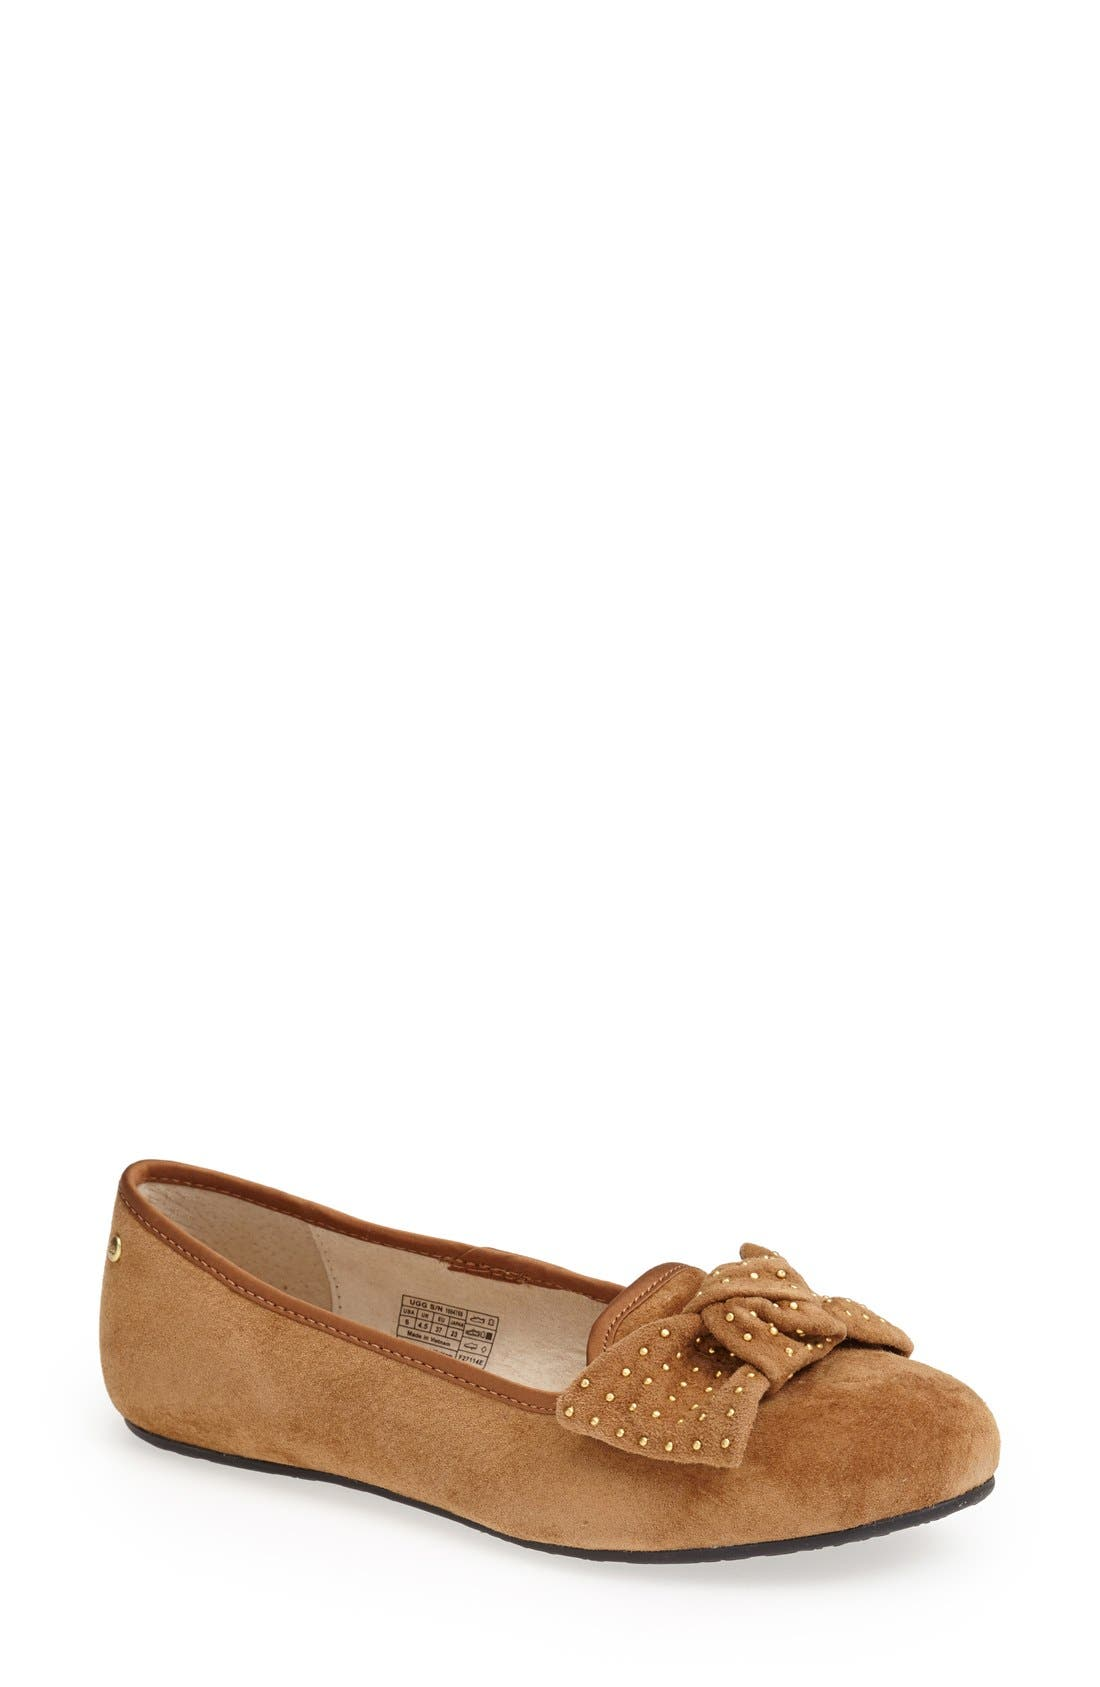 Alternate Image 1 Selected - UGG® 'Alloway -Studded Bow' Flat (Women)